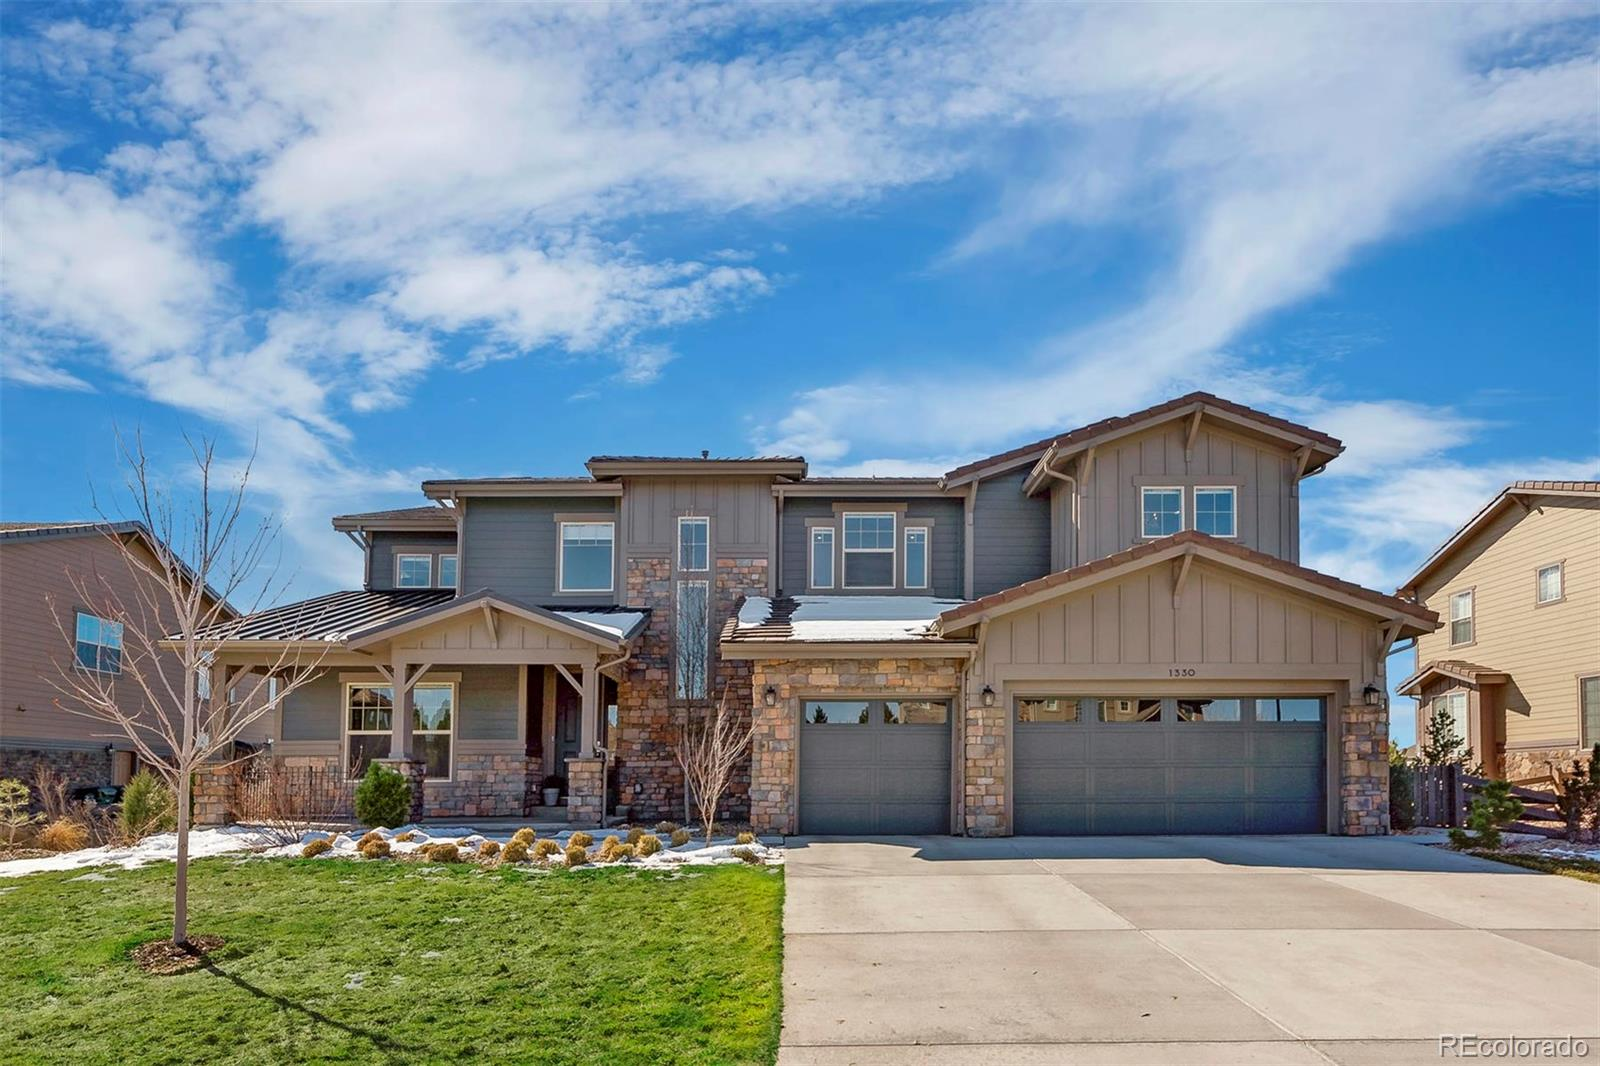 1330 Eversole Drive, Broomfield, CO 80023 - Broomfield, CO real estate listing